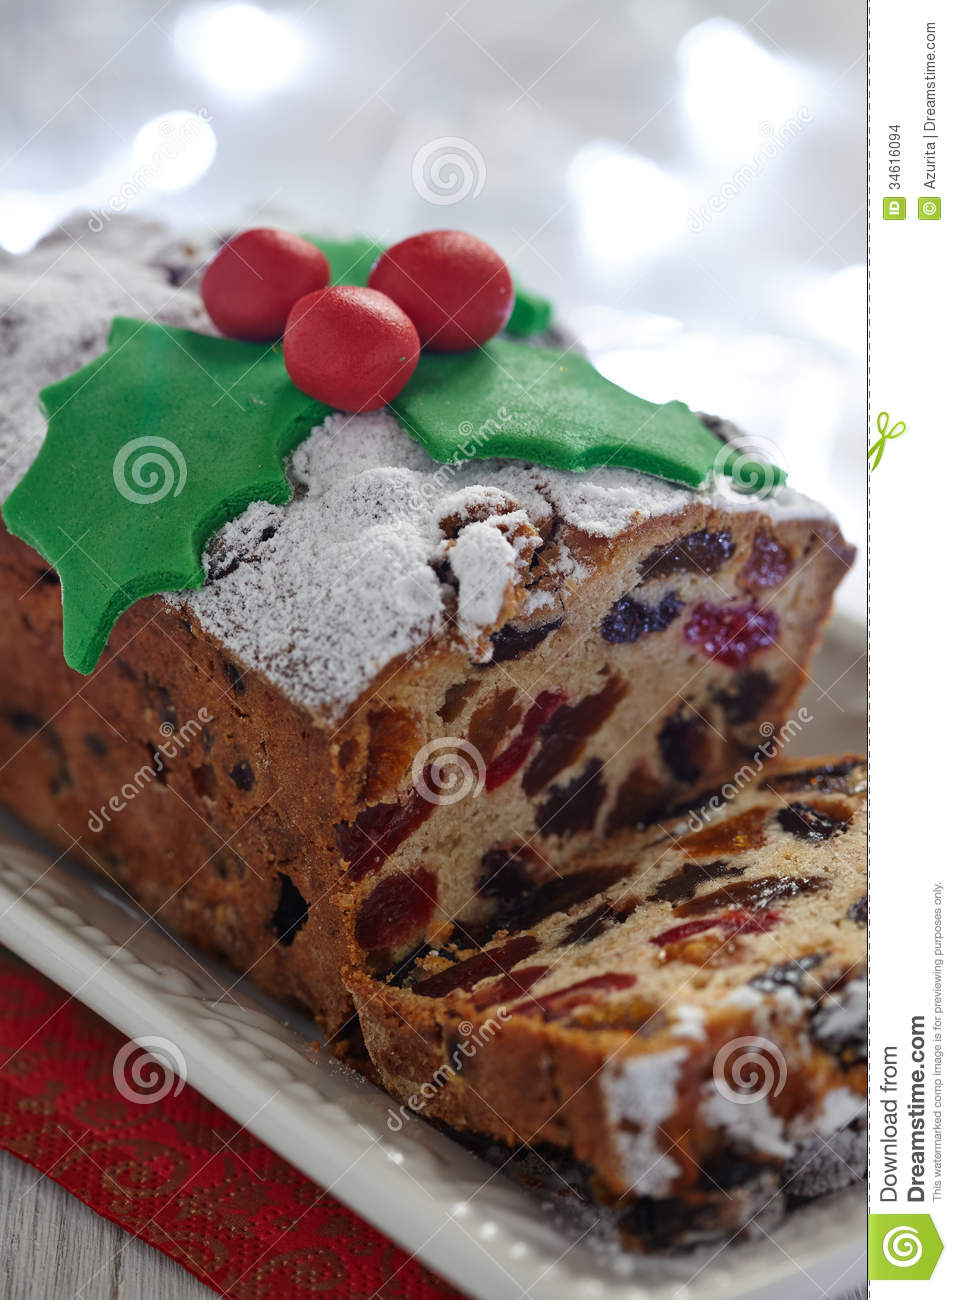 Christmas fruit cake decorated with holly and berries.